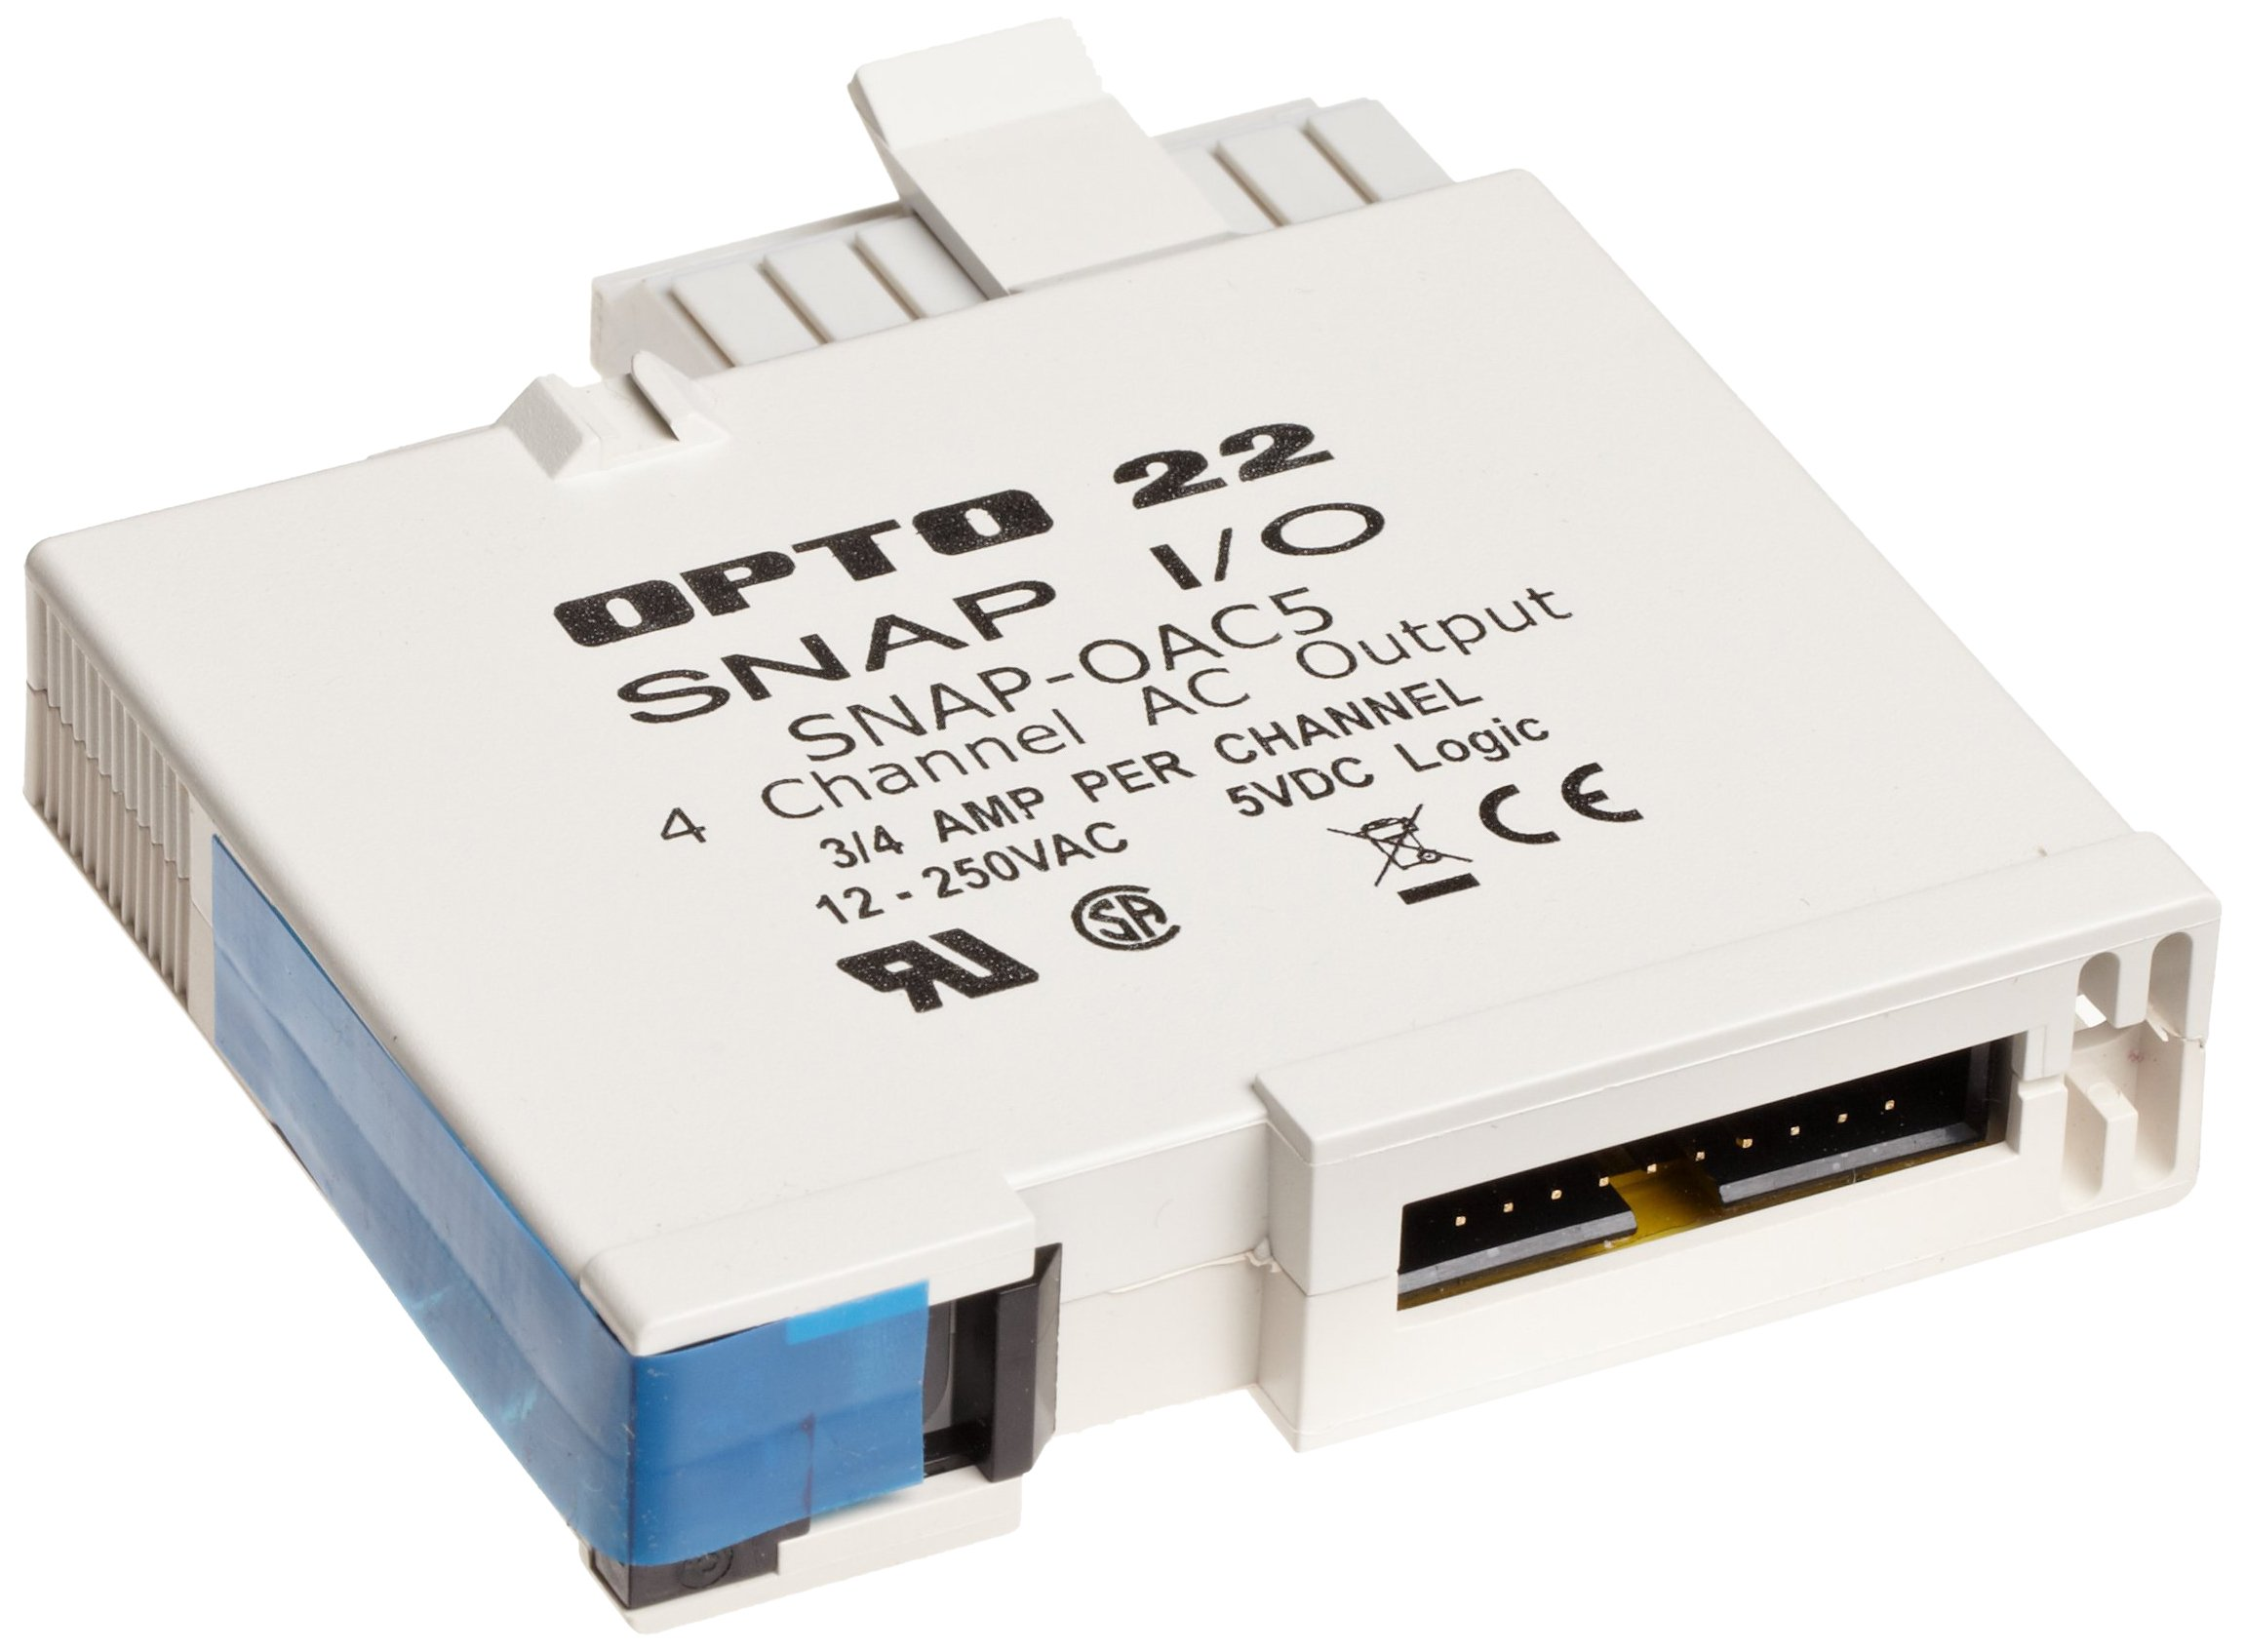 Opto 22 SNAP-OAC5 - SNAP Digital (Discrete) Output Module, 4-Channel, 12-250 VAC